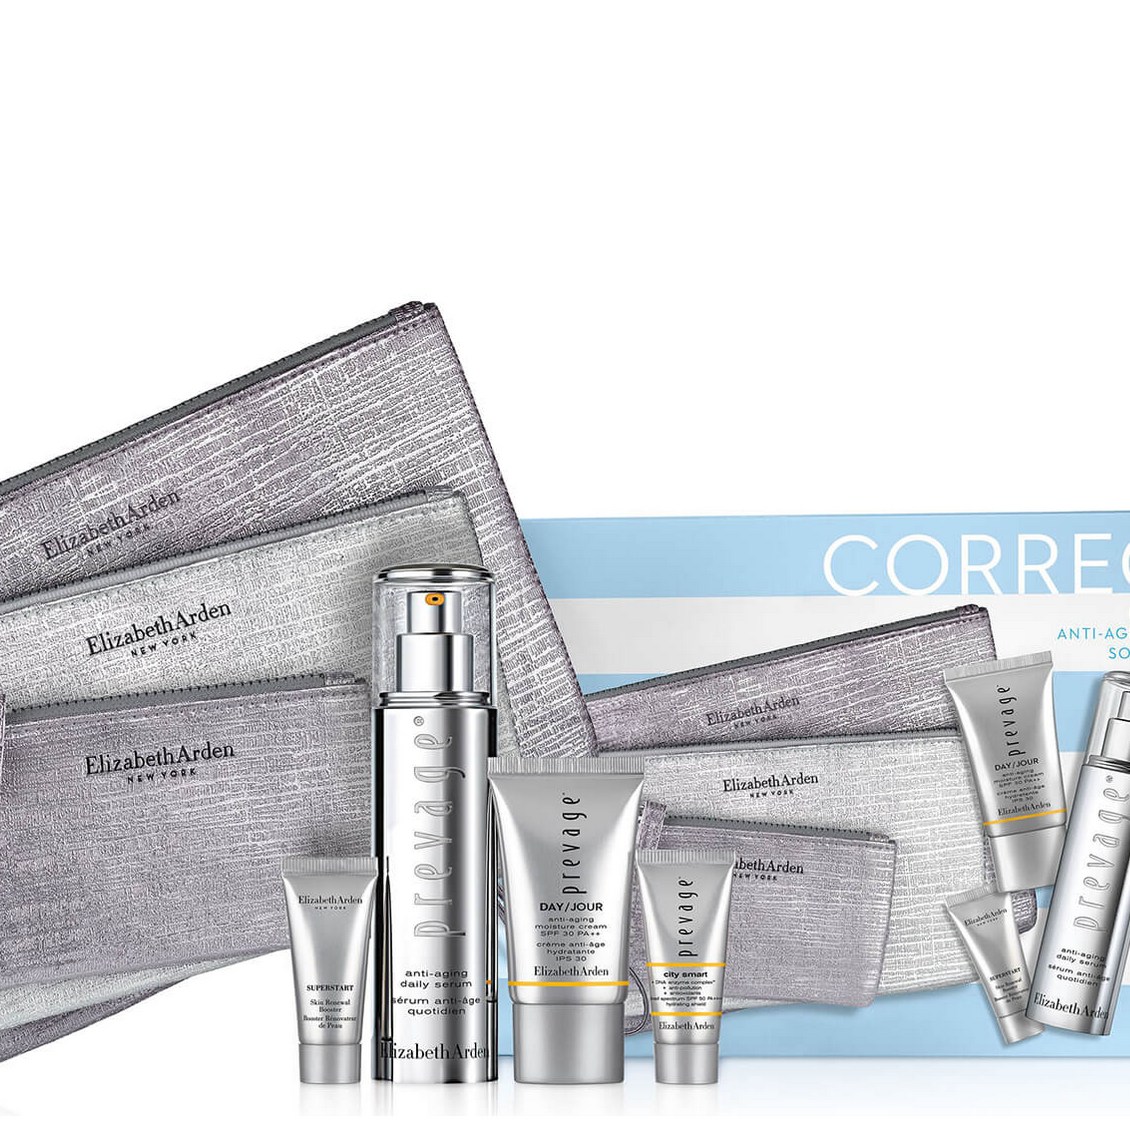 Lookfantastic US: 45% OFF Elizabeth Arden Prevage 4 Piece Daily Serum Set